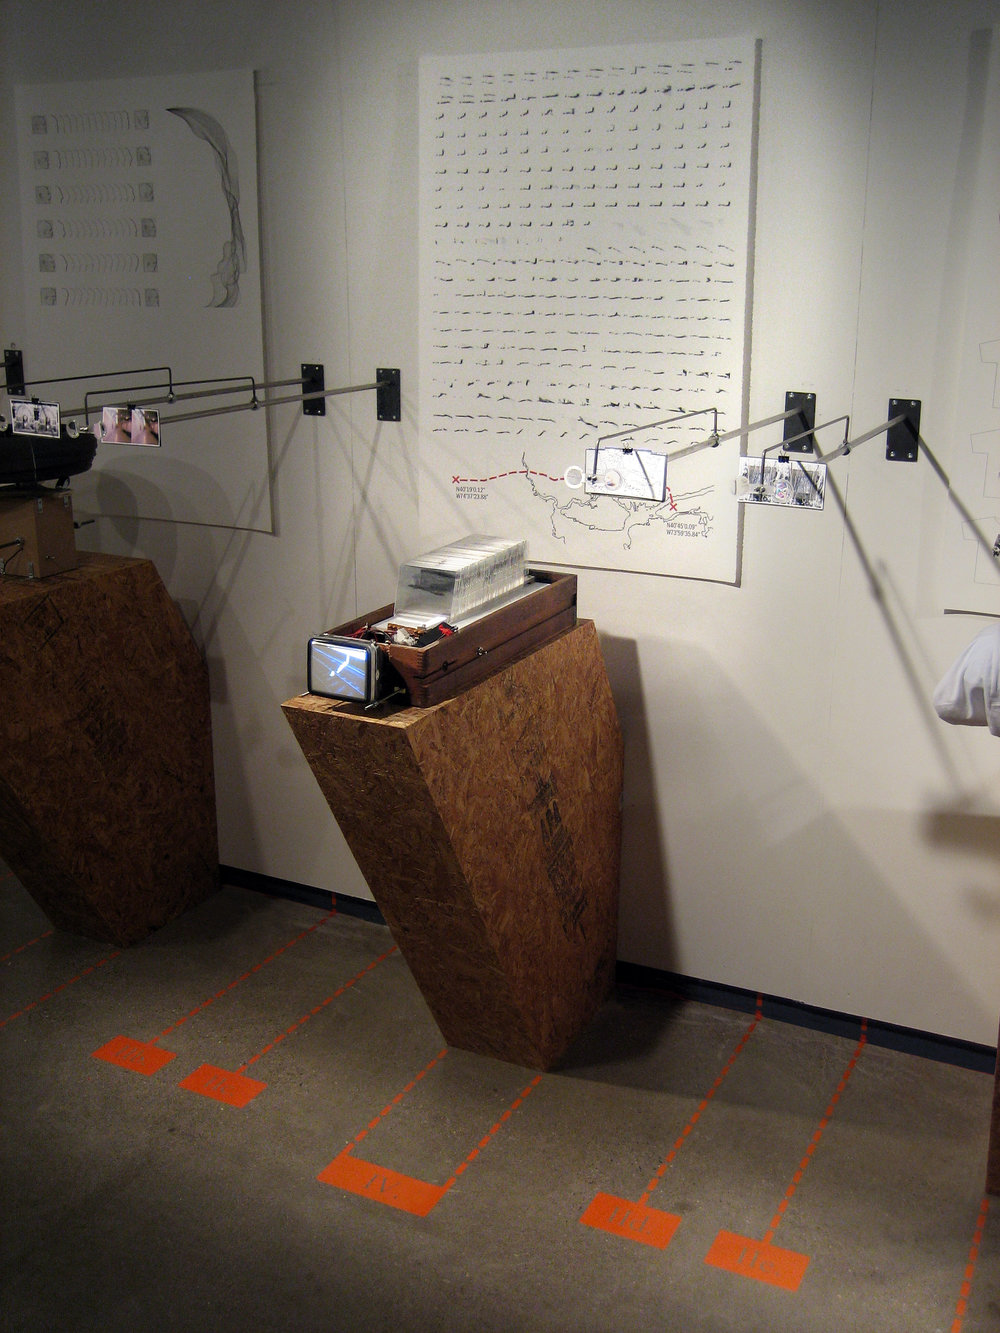 Installation view as part of  Parallel Projections,  installed at the University of Michigan Architecture Gallery, 2008.